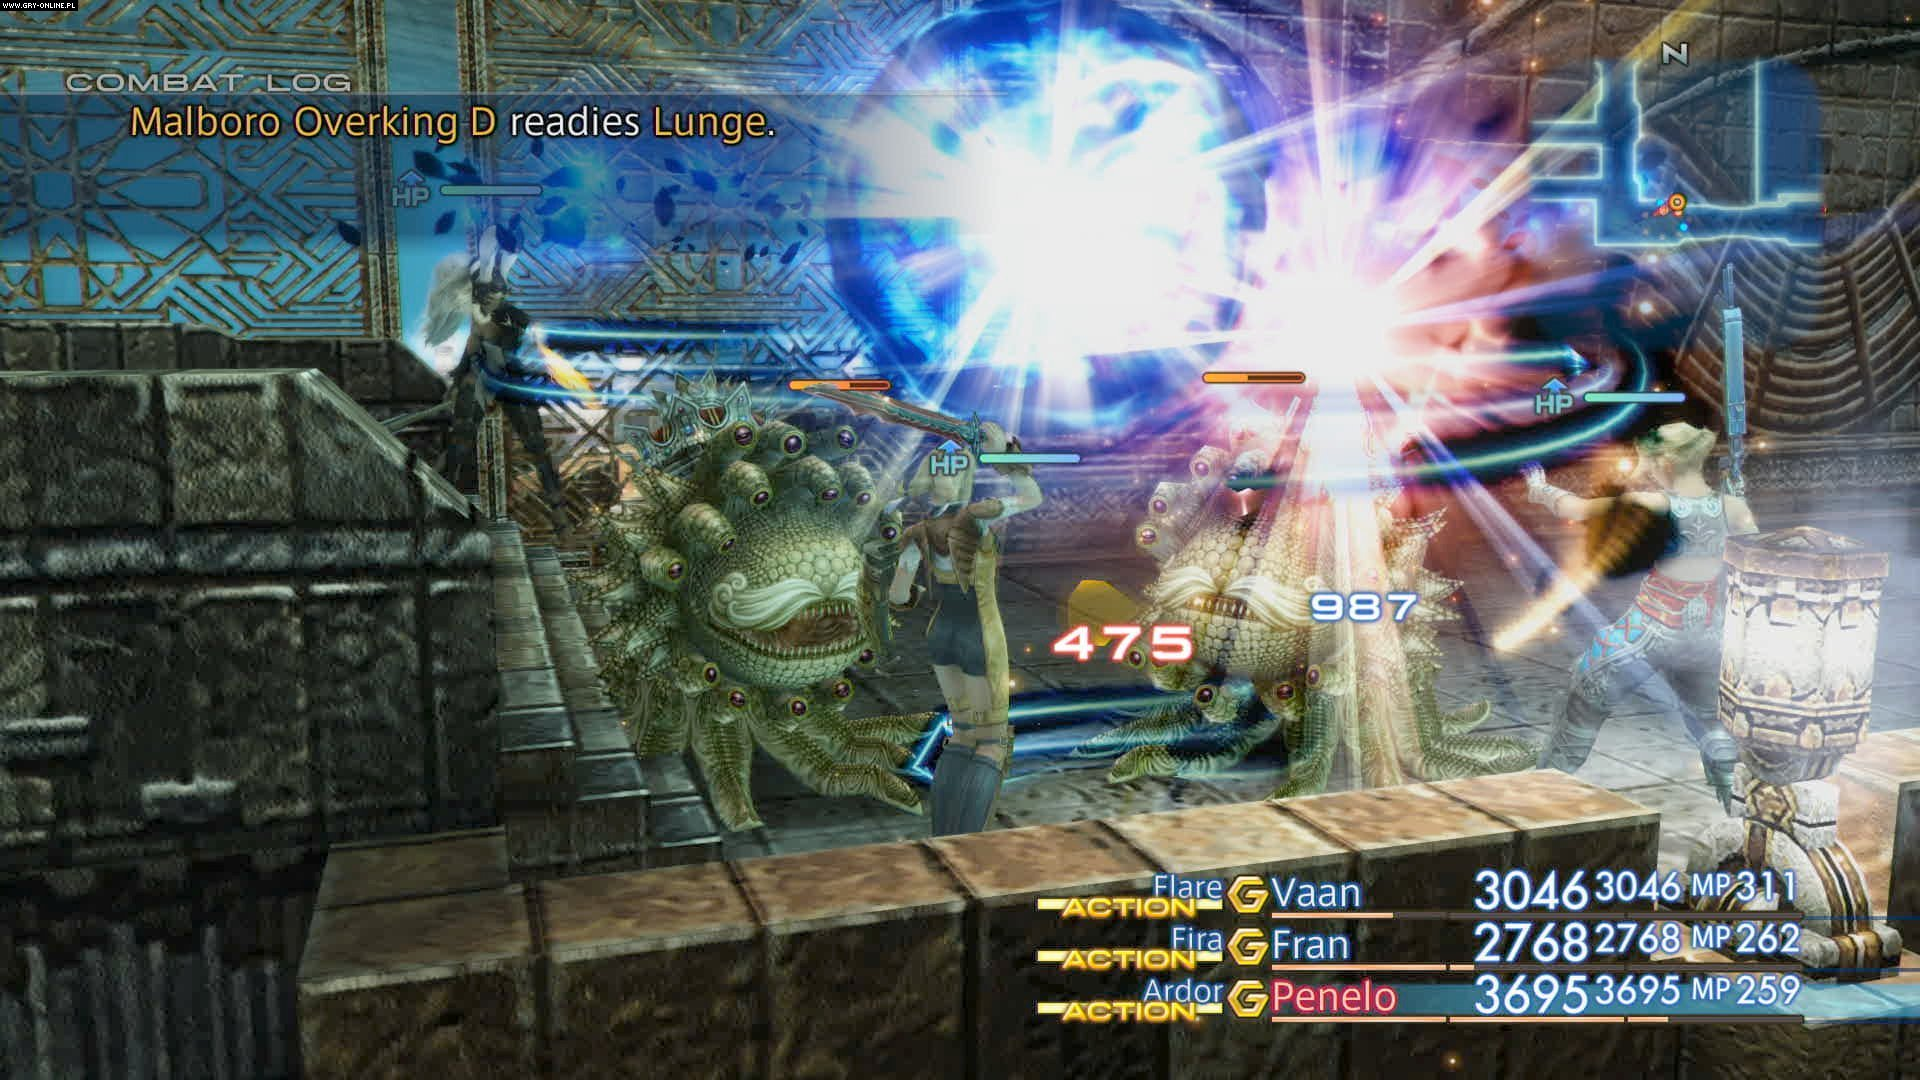 Final Fantasy XII: The Zodiac Age PS4 Gry Screen 54/71, Square-Enix / Eidos